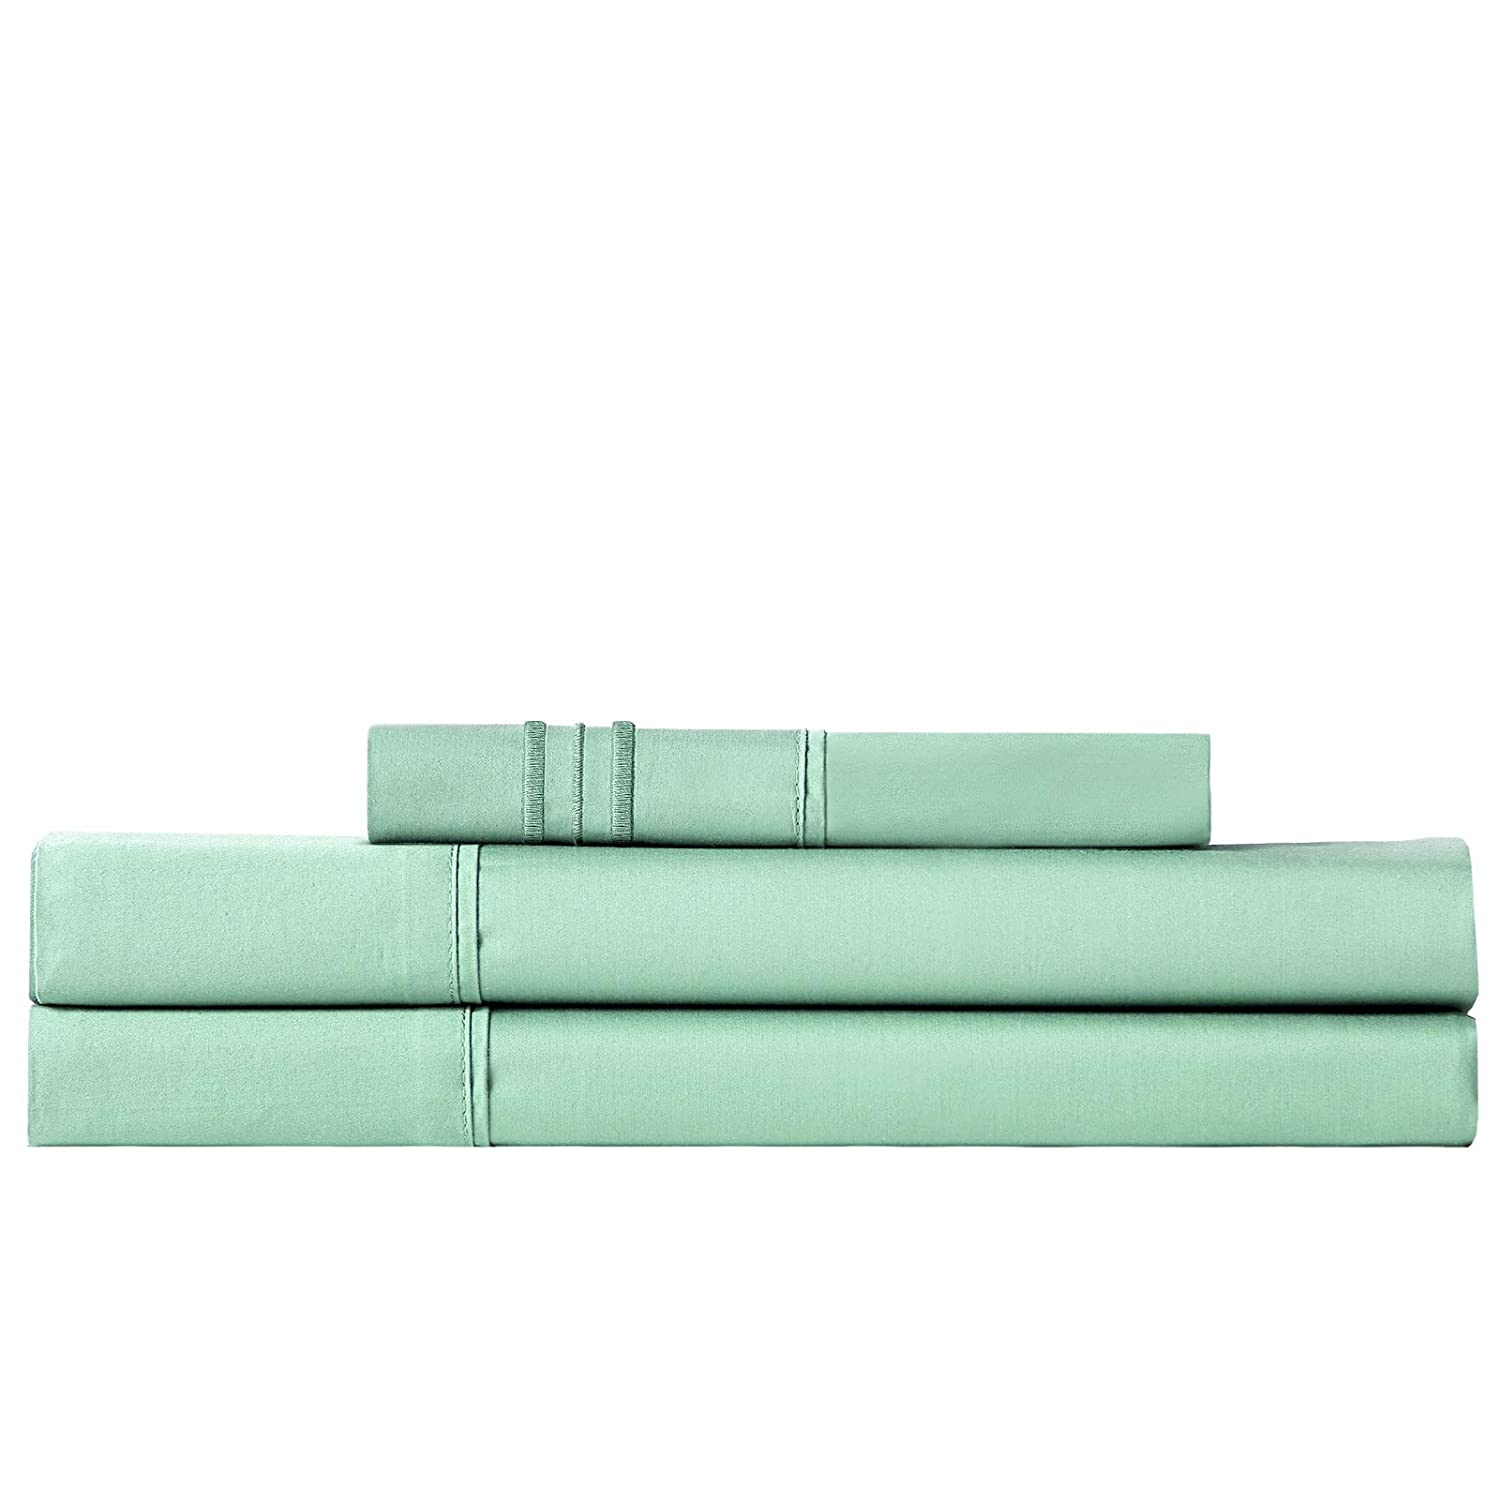 1 INCH Twin Sheet Set, 3 Piece 1800 Series Premium Brushed Microfiber Bed Sheets, Breathable Cooling Comfy Bedding Deep Pocket Toddler Room, Guest Room, Hotel, RV (Light Green, Twin)